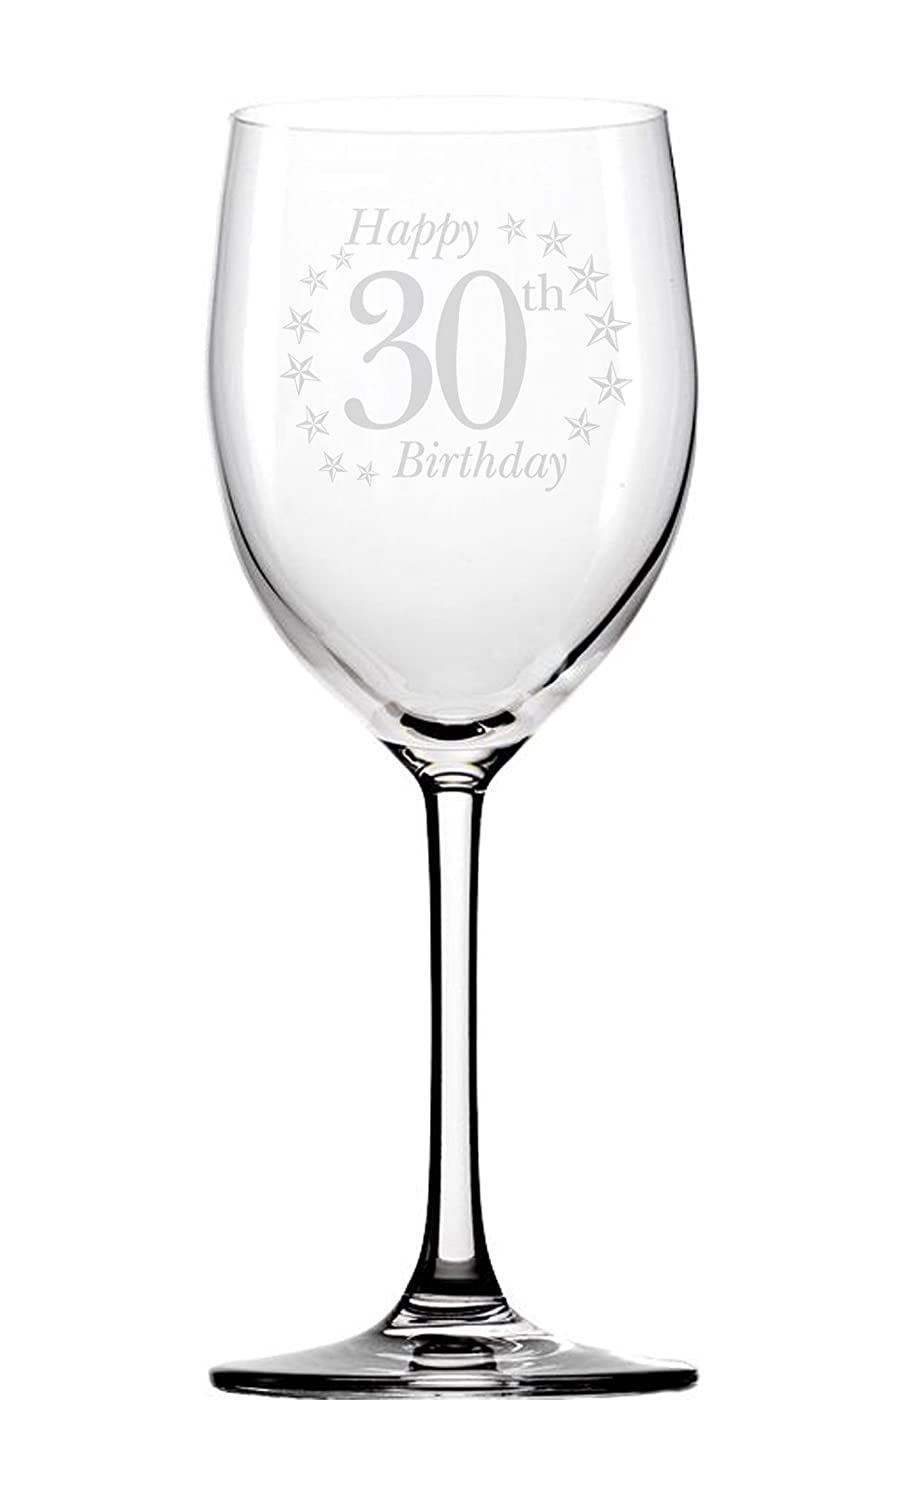 Chris Bag of Goodies Happy 30th 30 Birthday Engraved Wine Glass Novelty Gifts Present Women Her Girls Girl